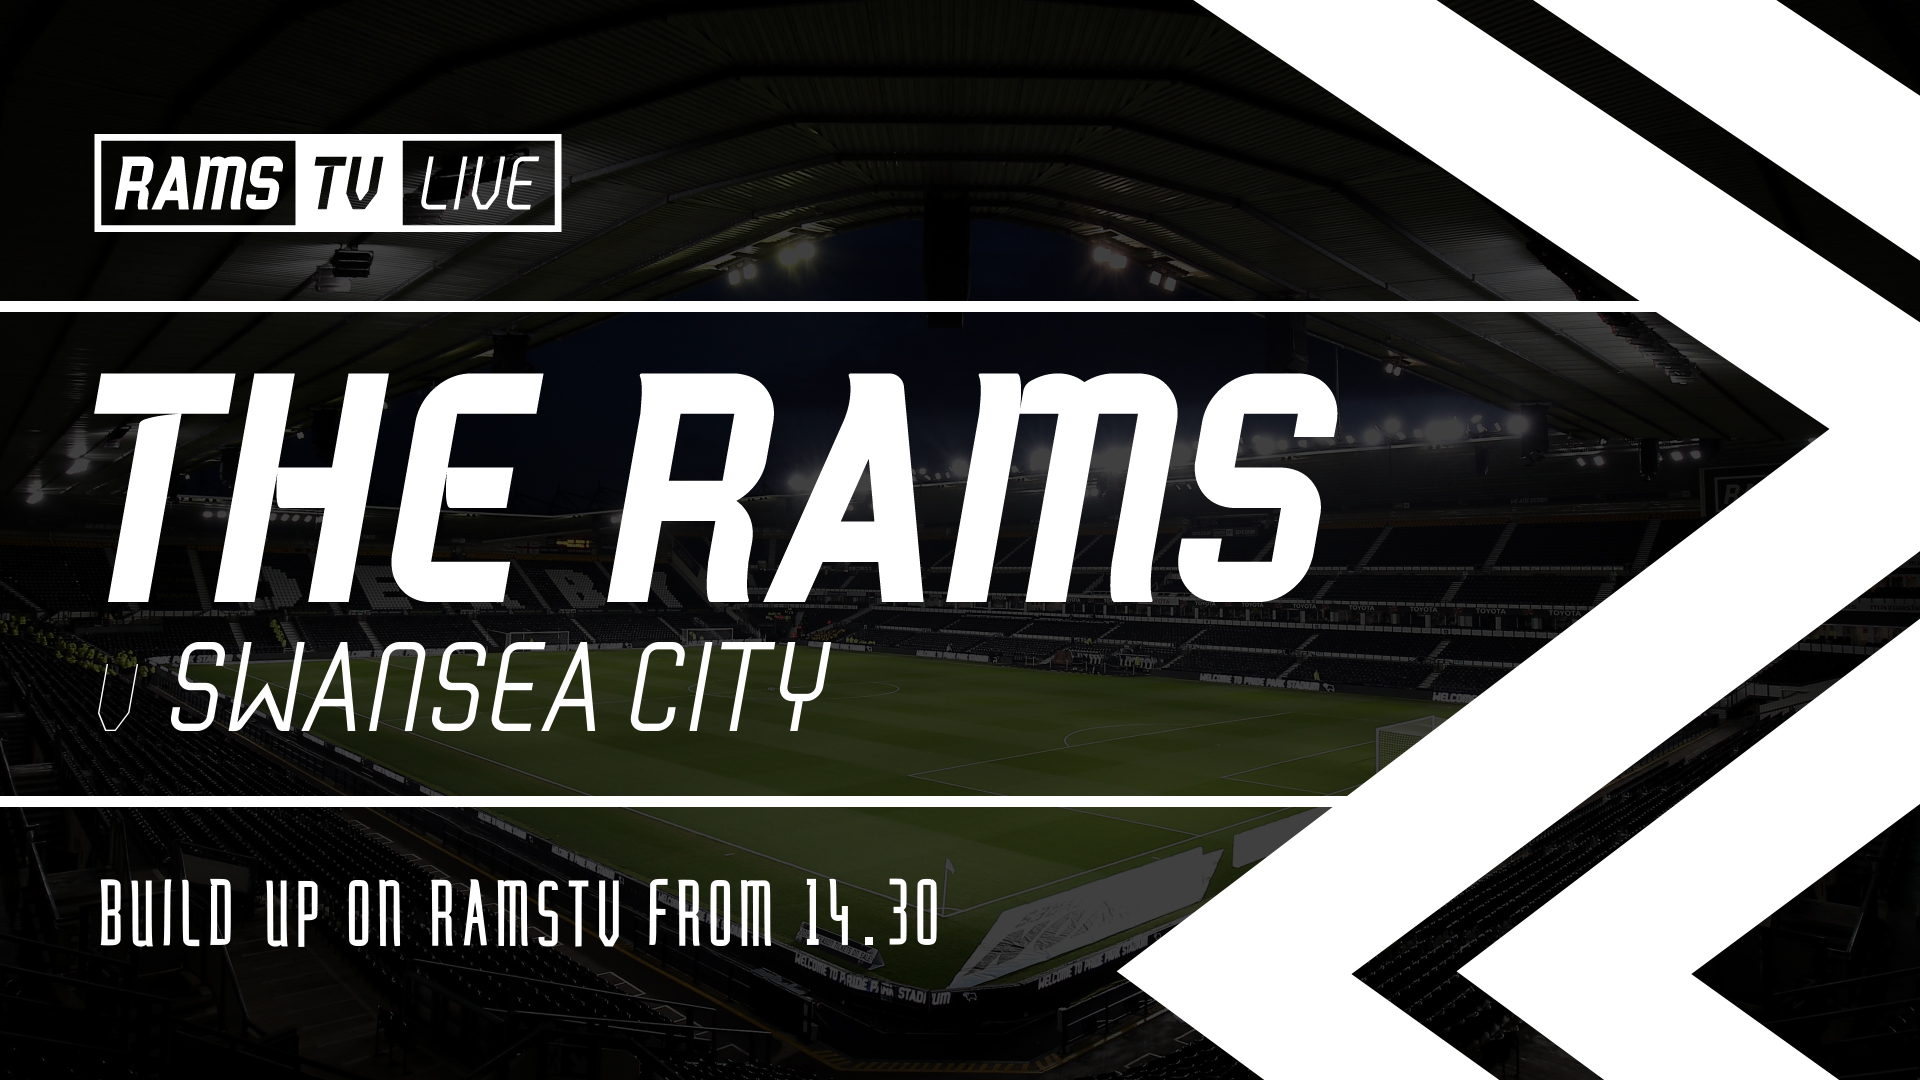 Matchday Prices Confirmed For Swansea Clash - Blog - Derby County